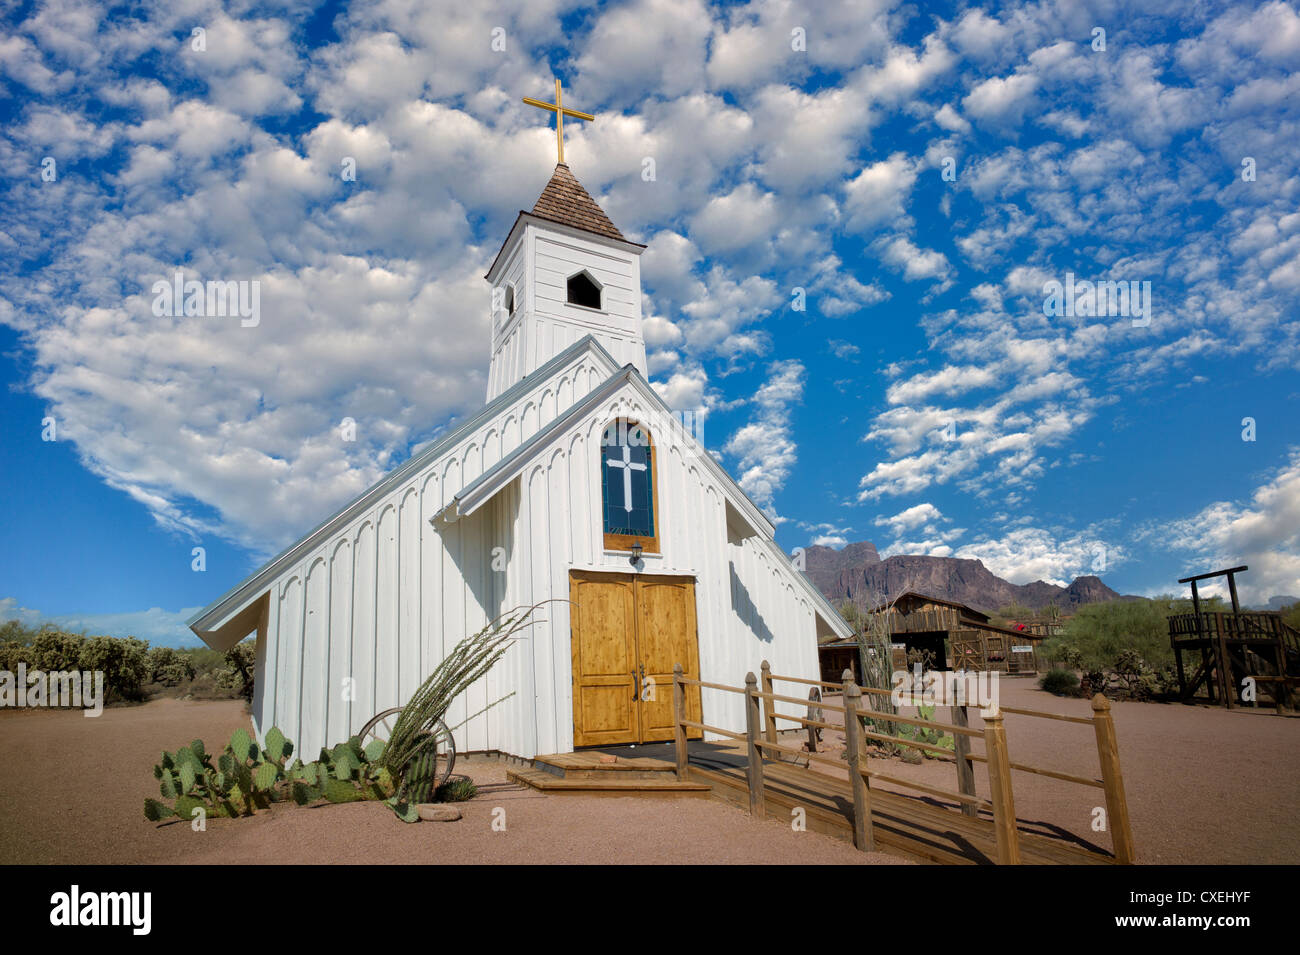 Old West Church in Sperstion Mountains, Arizona - Stock Image